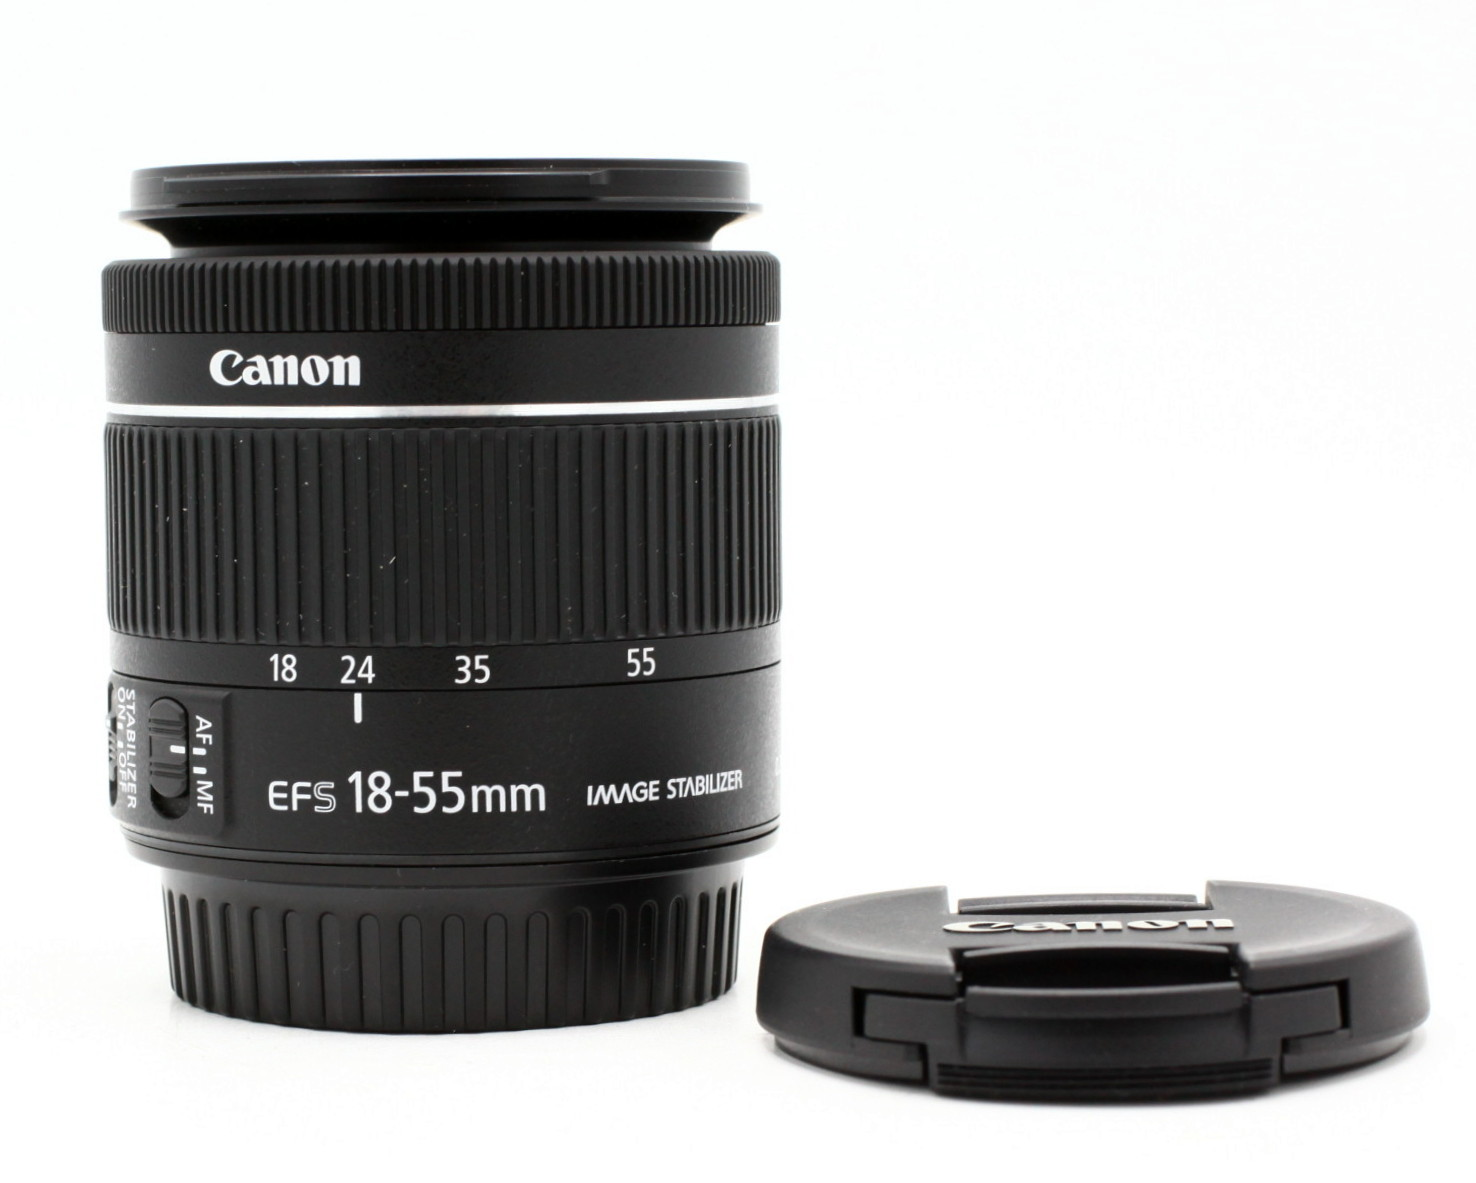 Canon EF-S 18-55mm F/4-5.6 iS STM COMPACT occasion